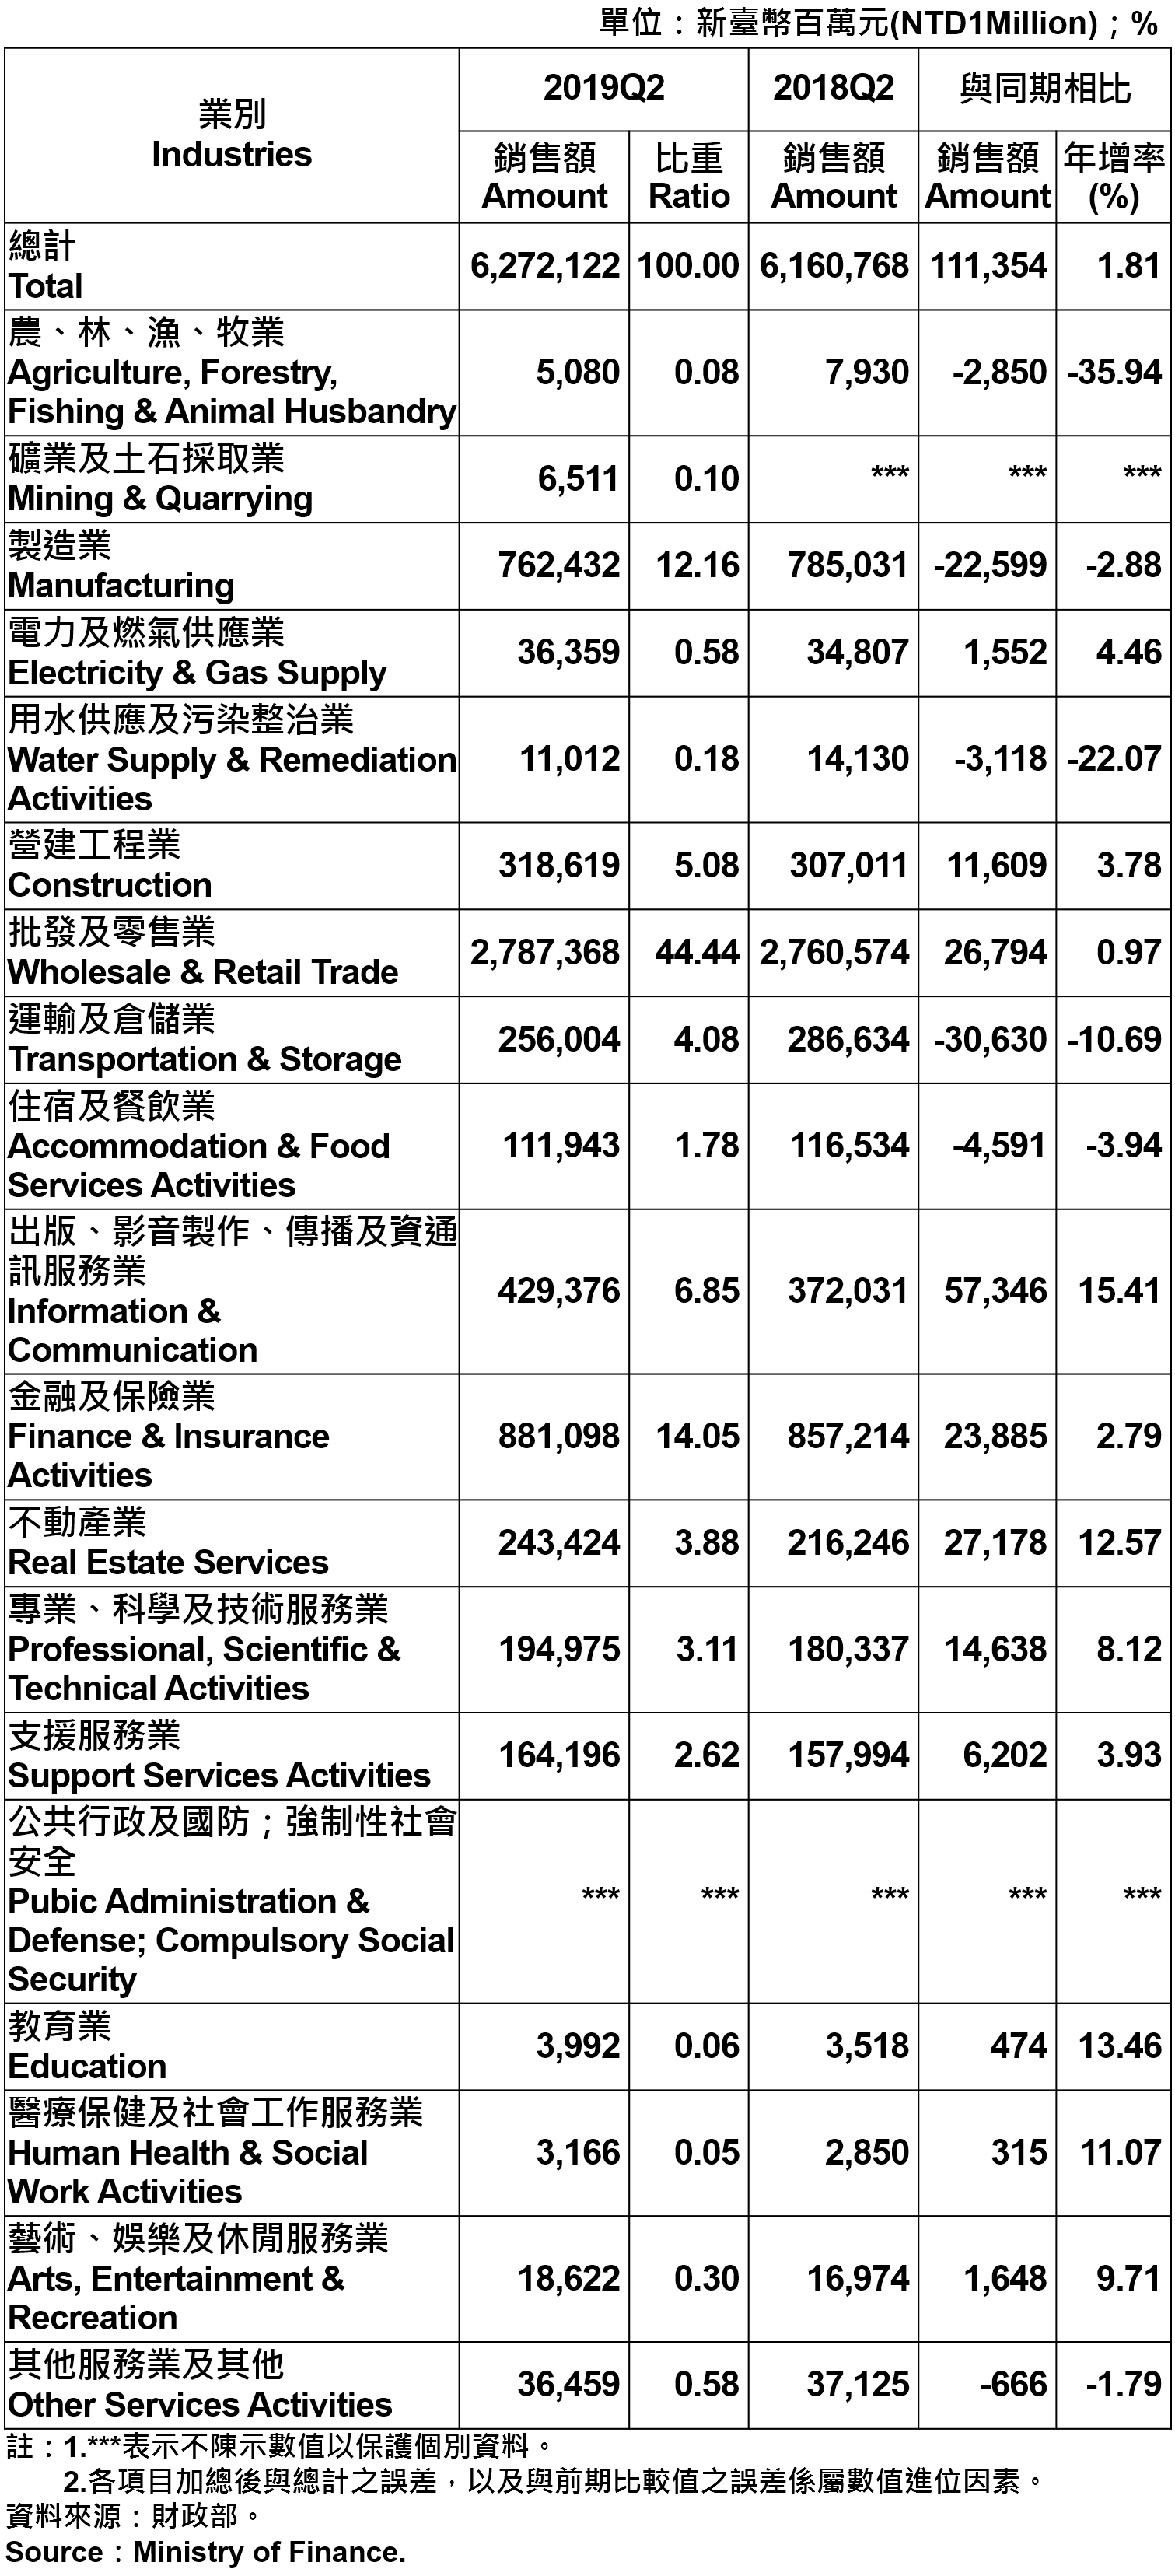 臺北市各產業公司行號銷售額—2019Q2 Sales of Companies and Firms in Taipei City by Industry—2019Q2